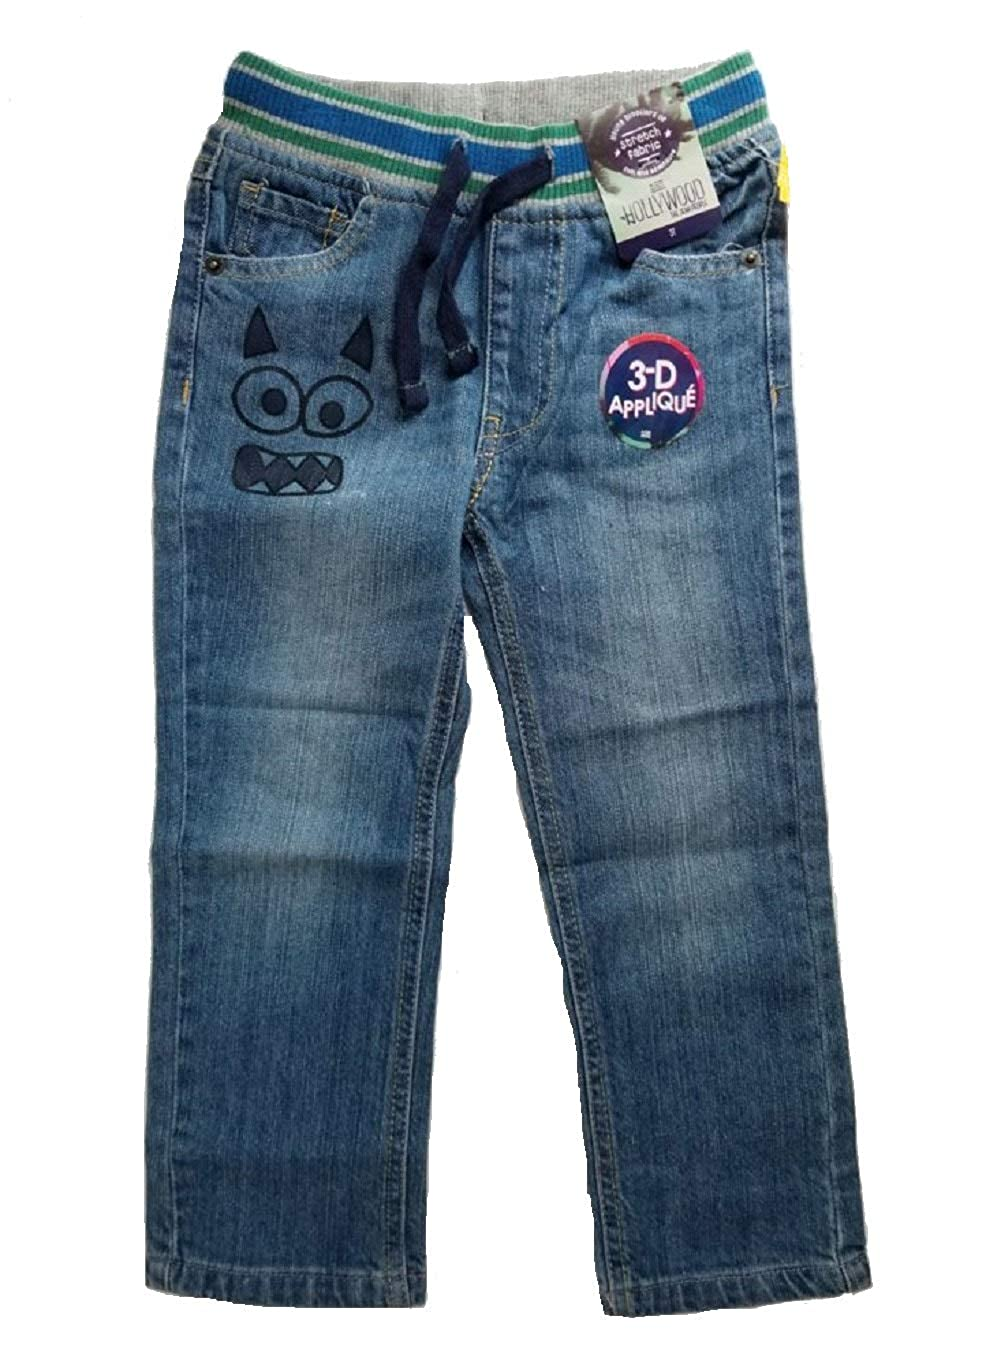 Holly Wood Stitch Fix Kids 3-D Applique Pull-on Jeans Front Pockets Blue